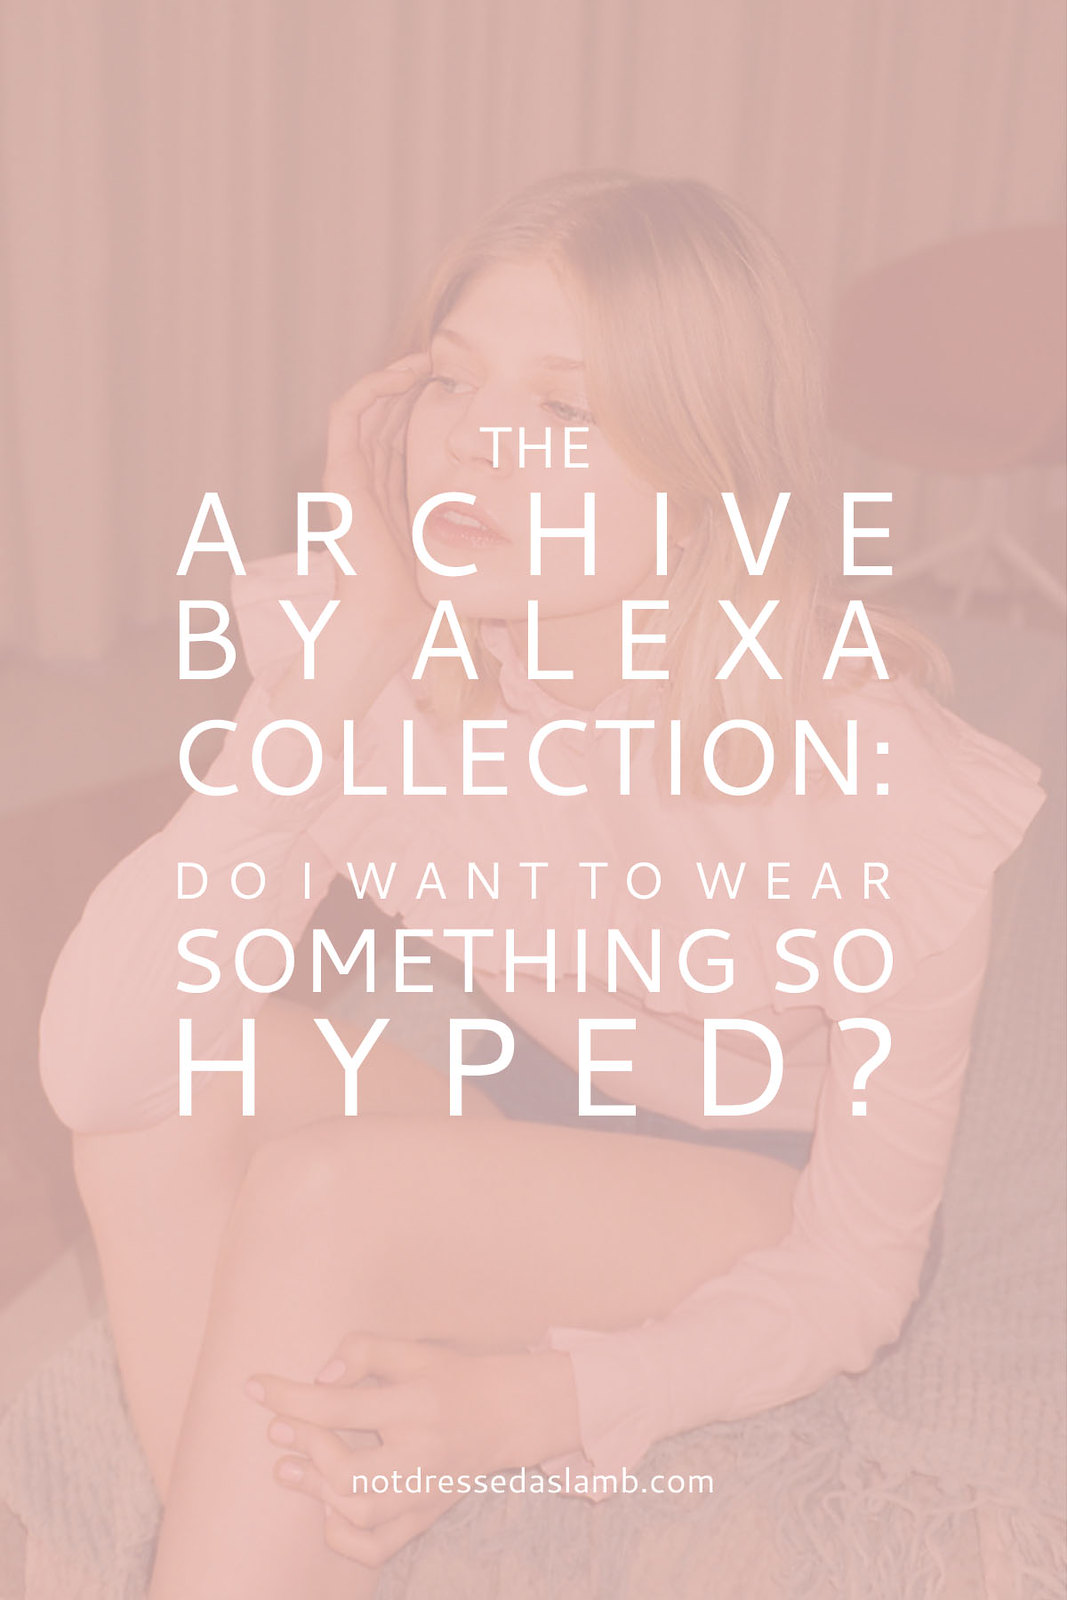 The Archive by Alexa Collection: Can I Wear Something So Hyped? | Not Dressed As Lamb ponders